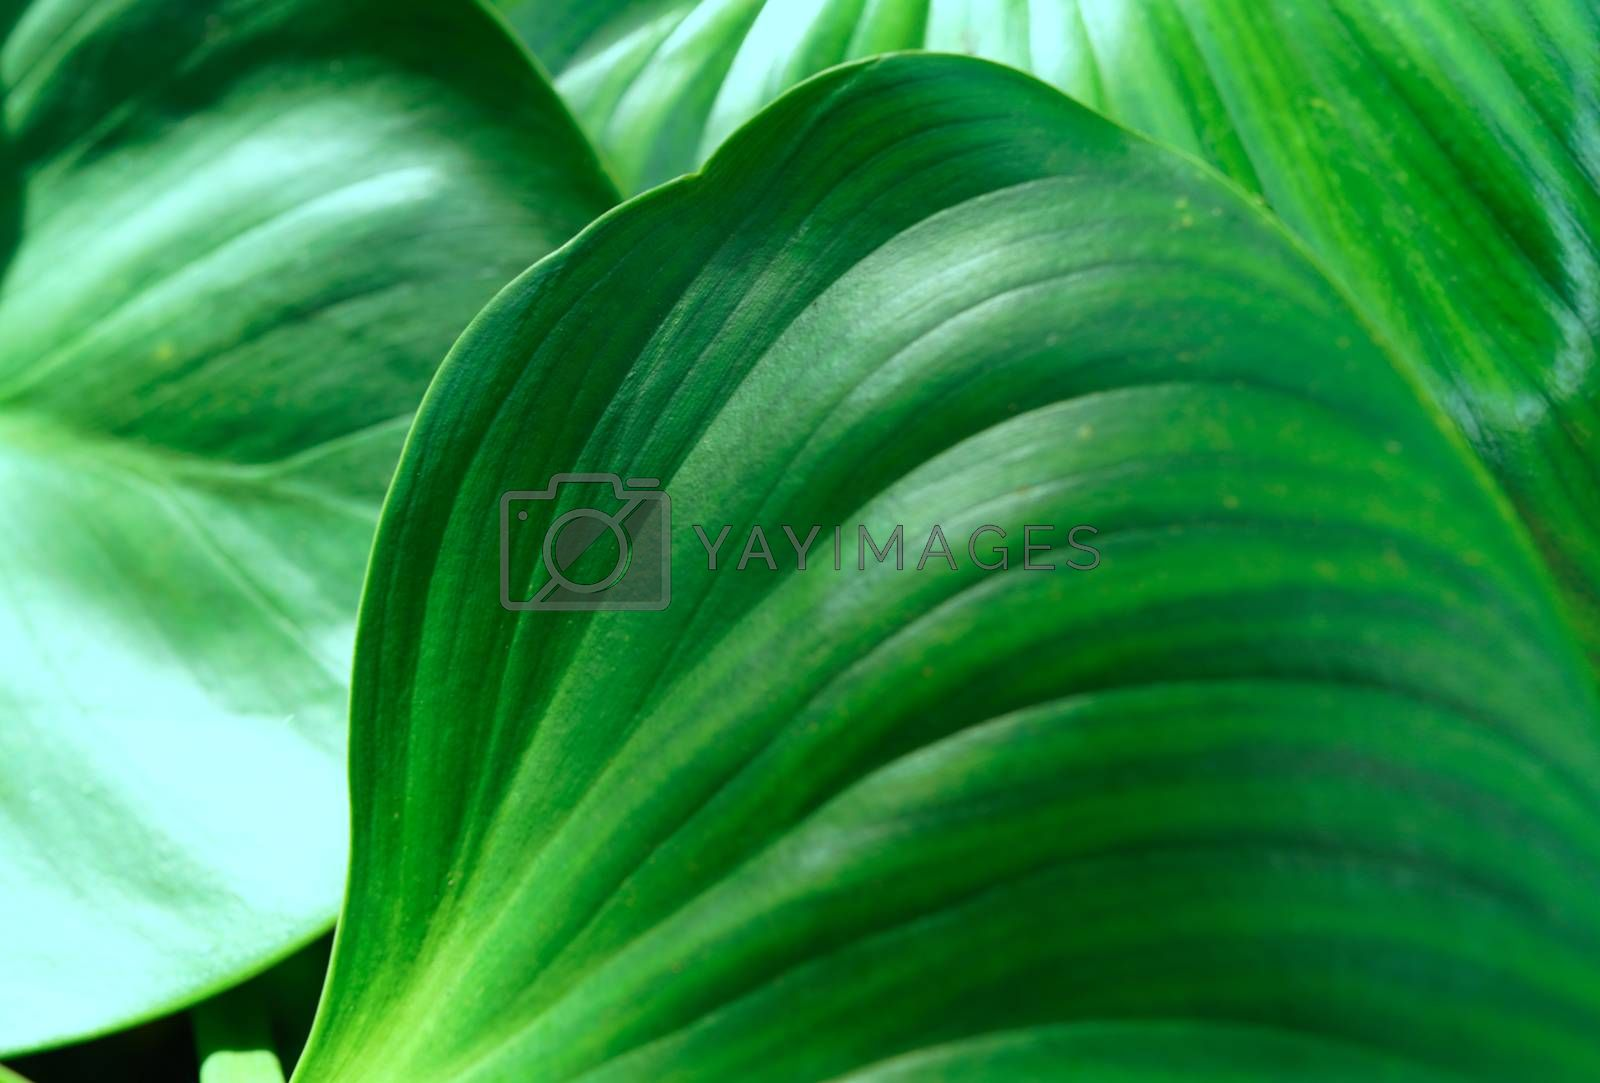 A close-up of the verdant foliage in the botanical garden, selective focus.